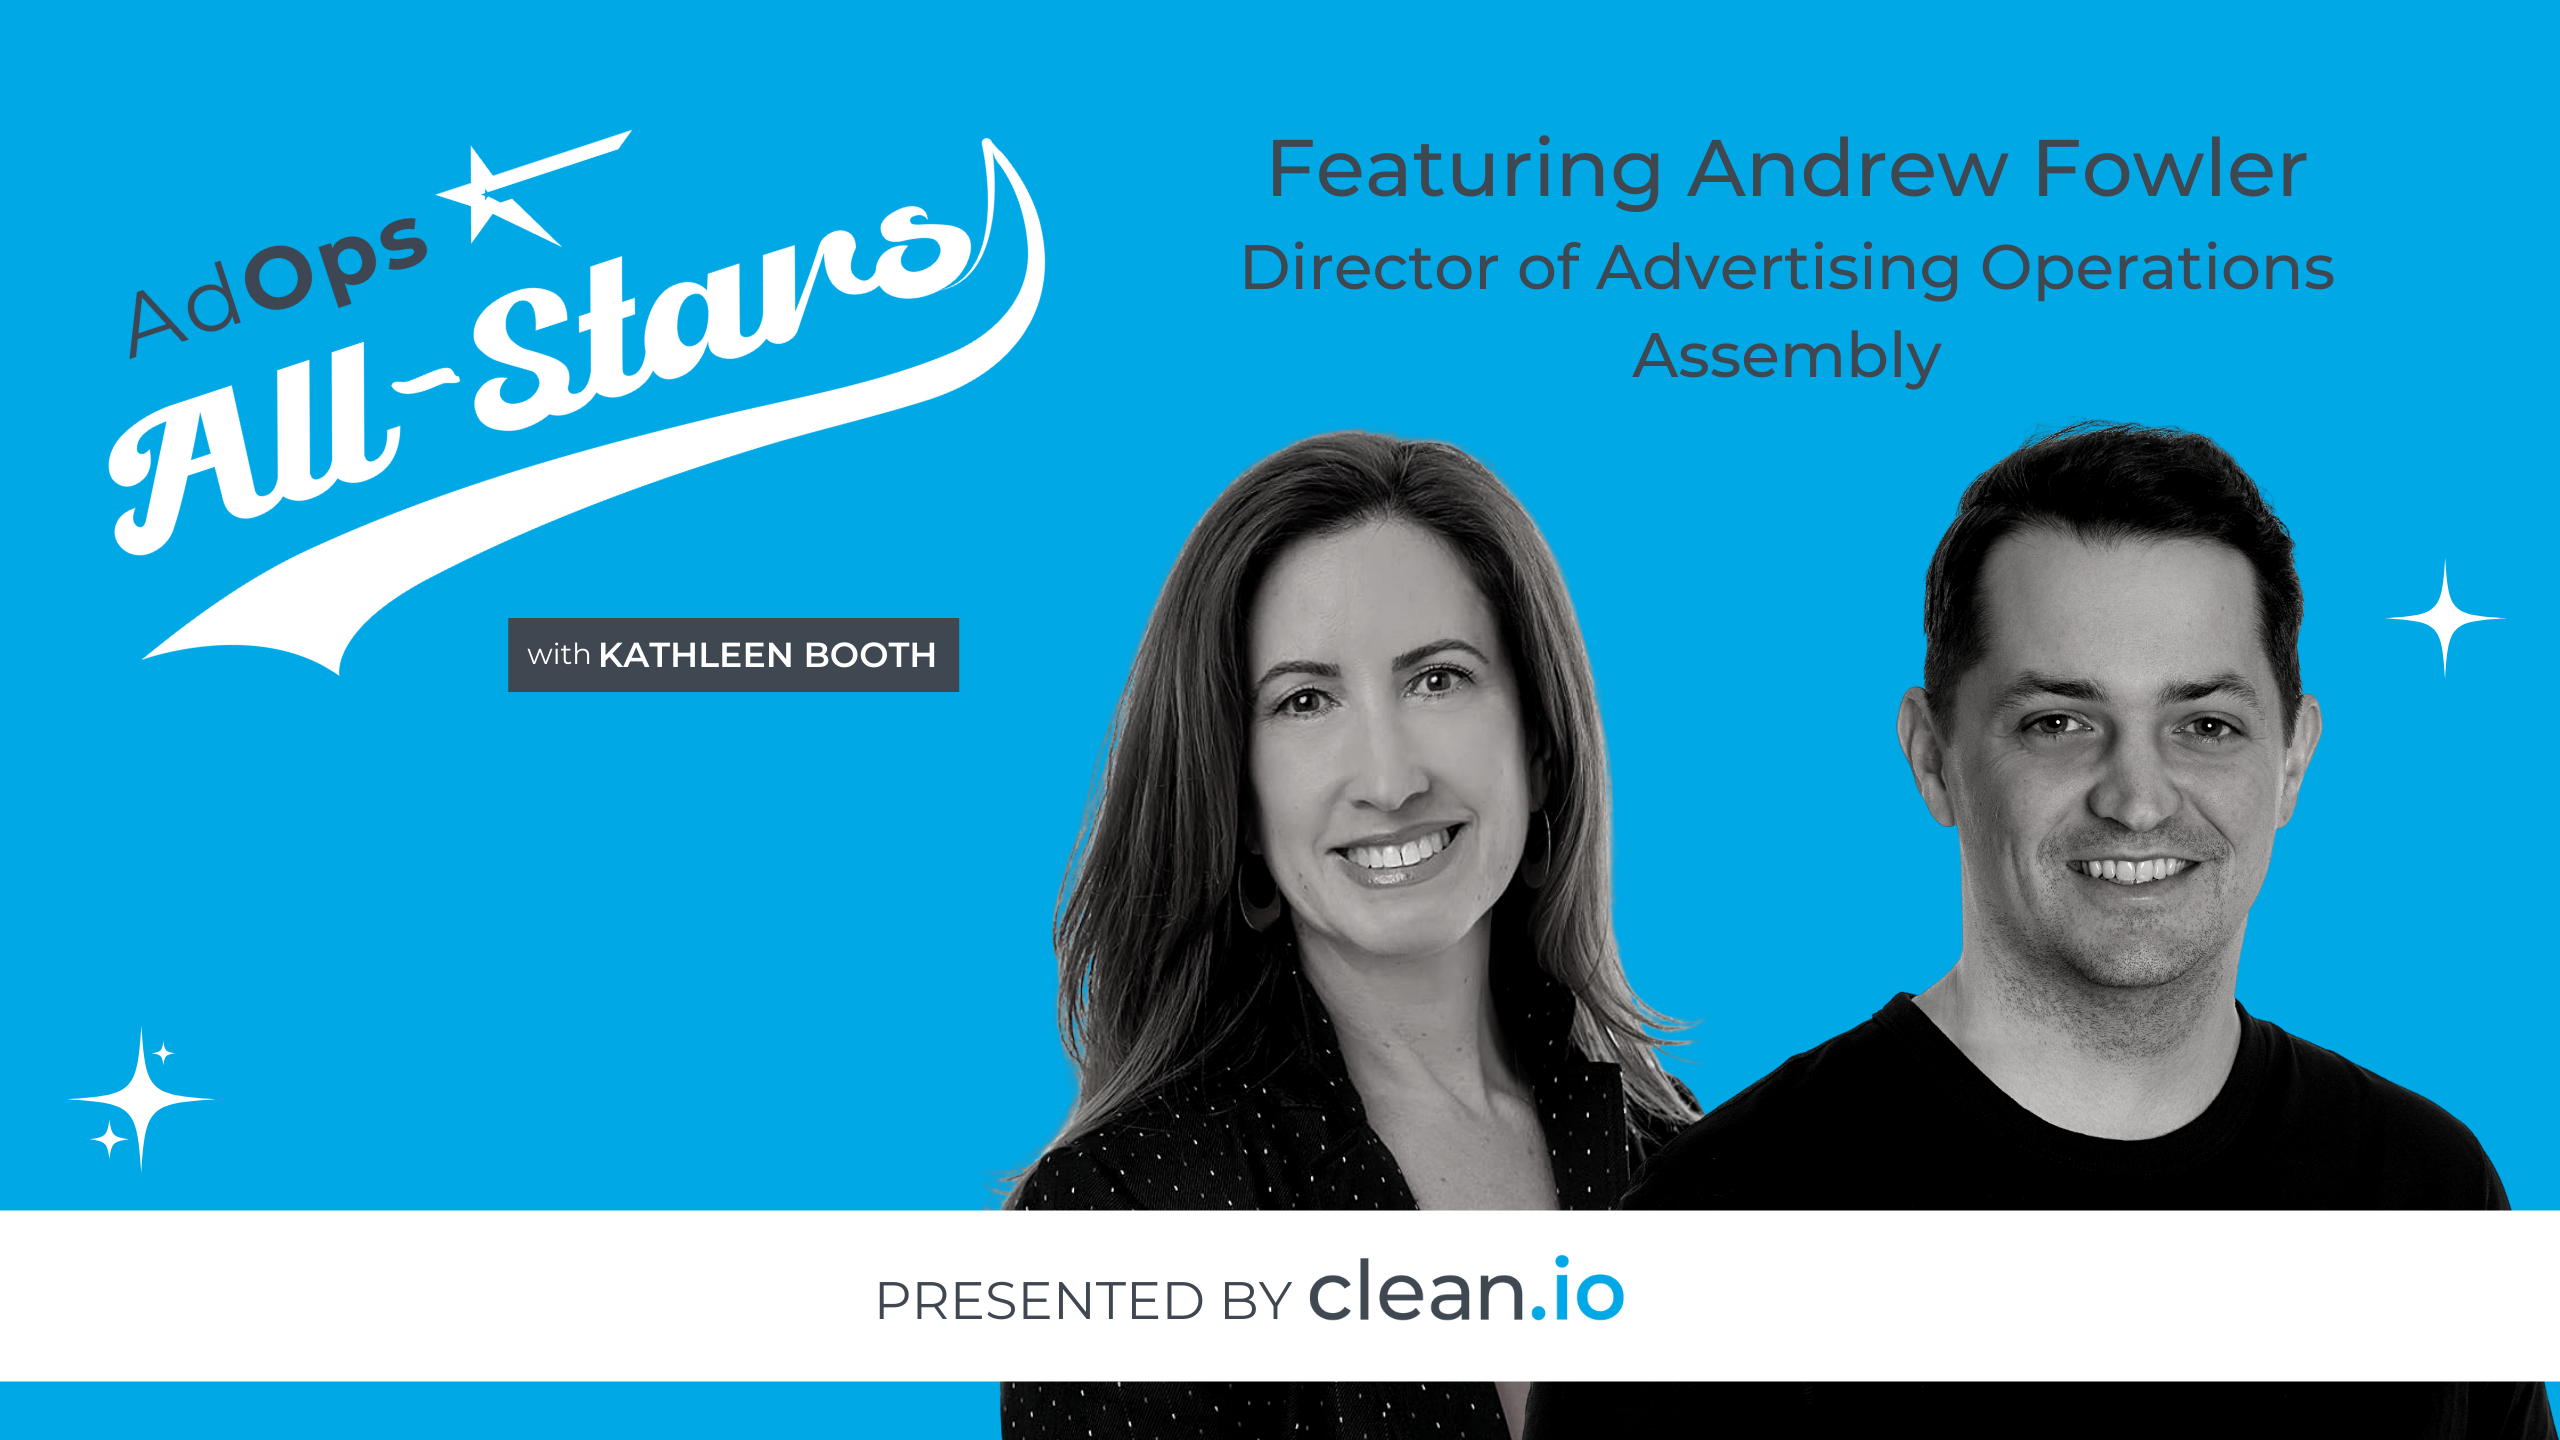 Ad Ops All Stars: Andrew Fowler, Assembly